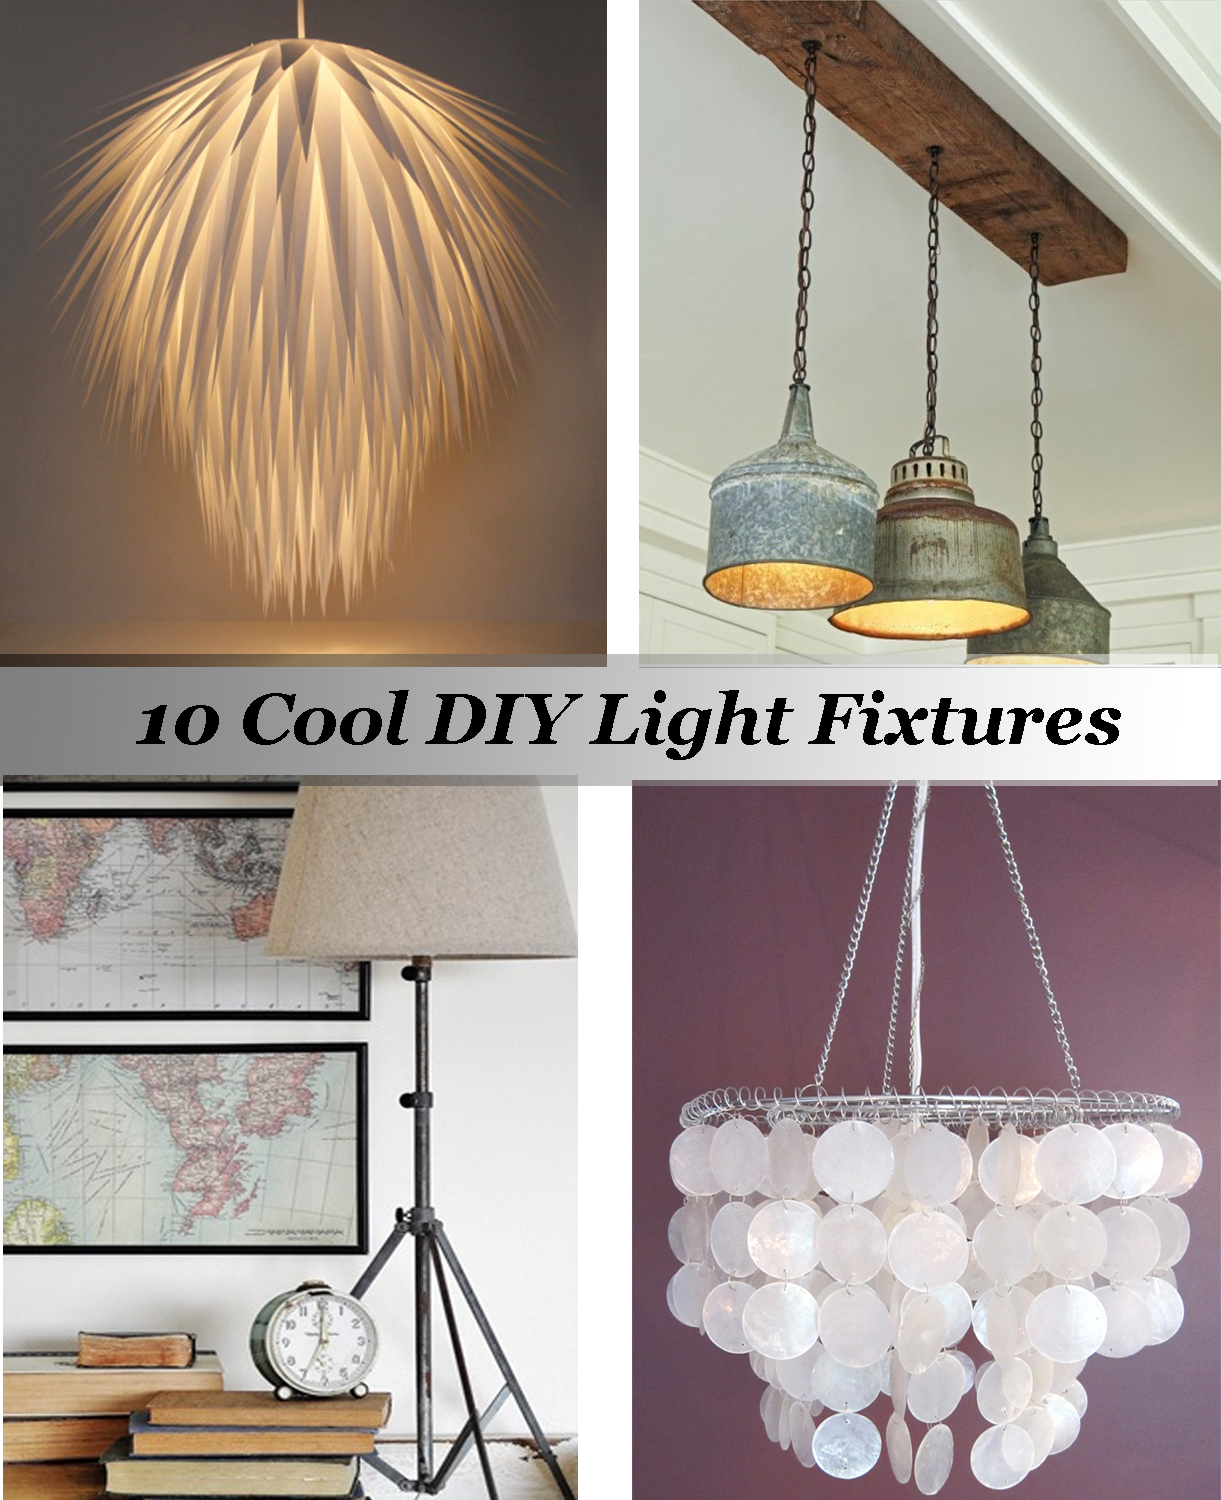 Diy lighting fixtures